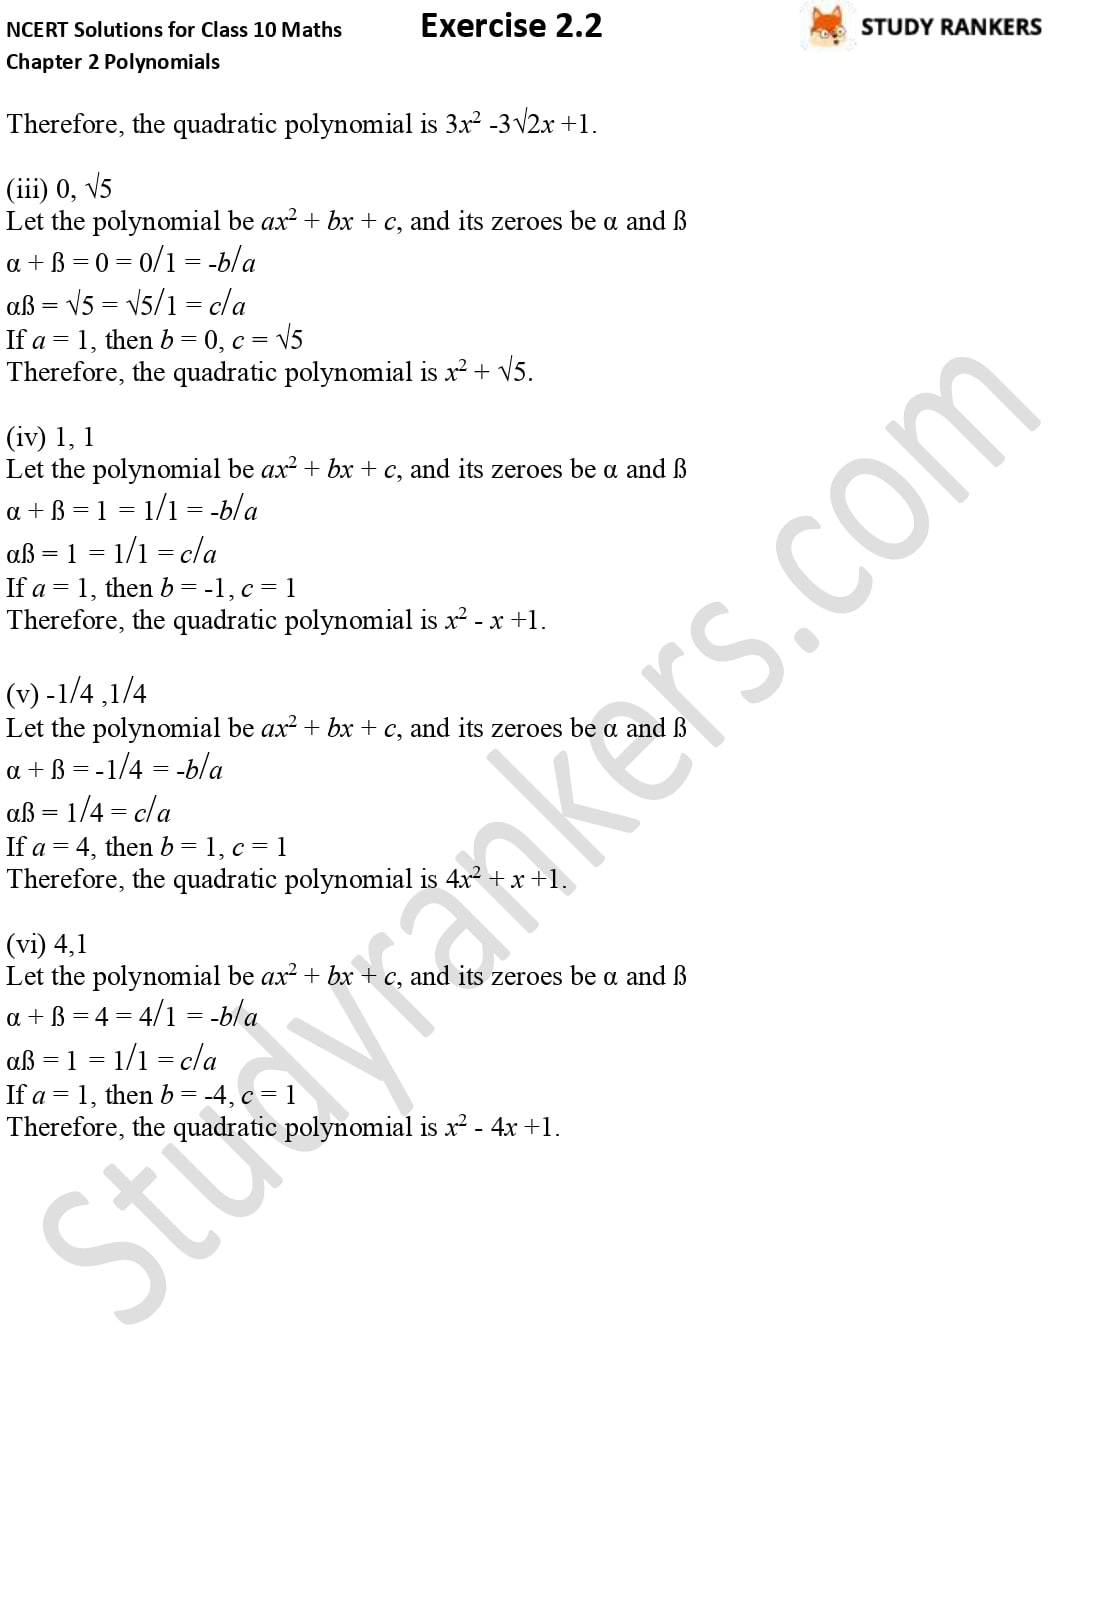 NCERT Solutions for Class 10 Maths Chapter 2 Polynomials Exercise 2.2 3